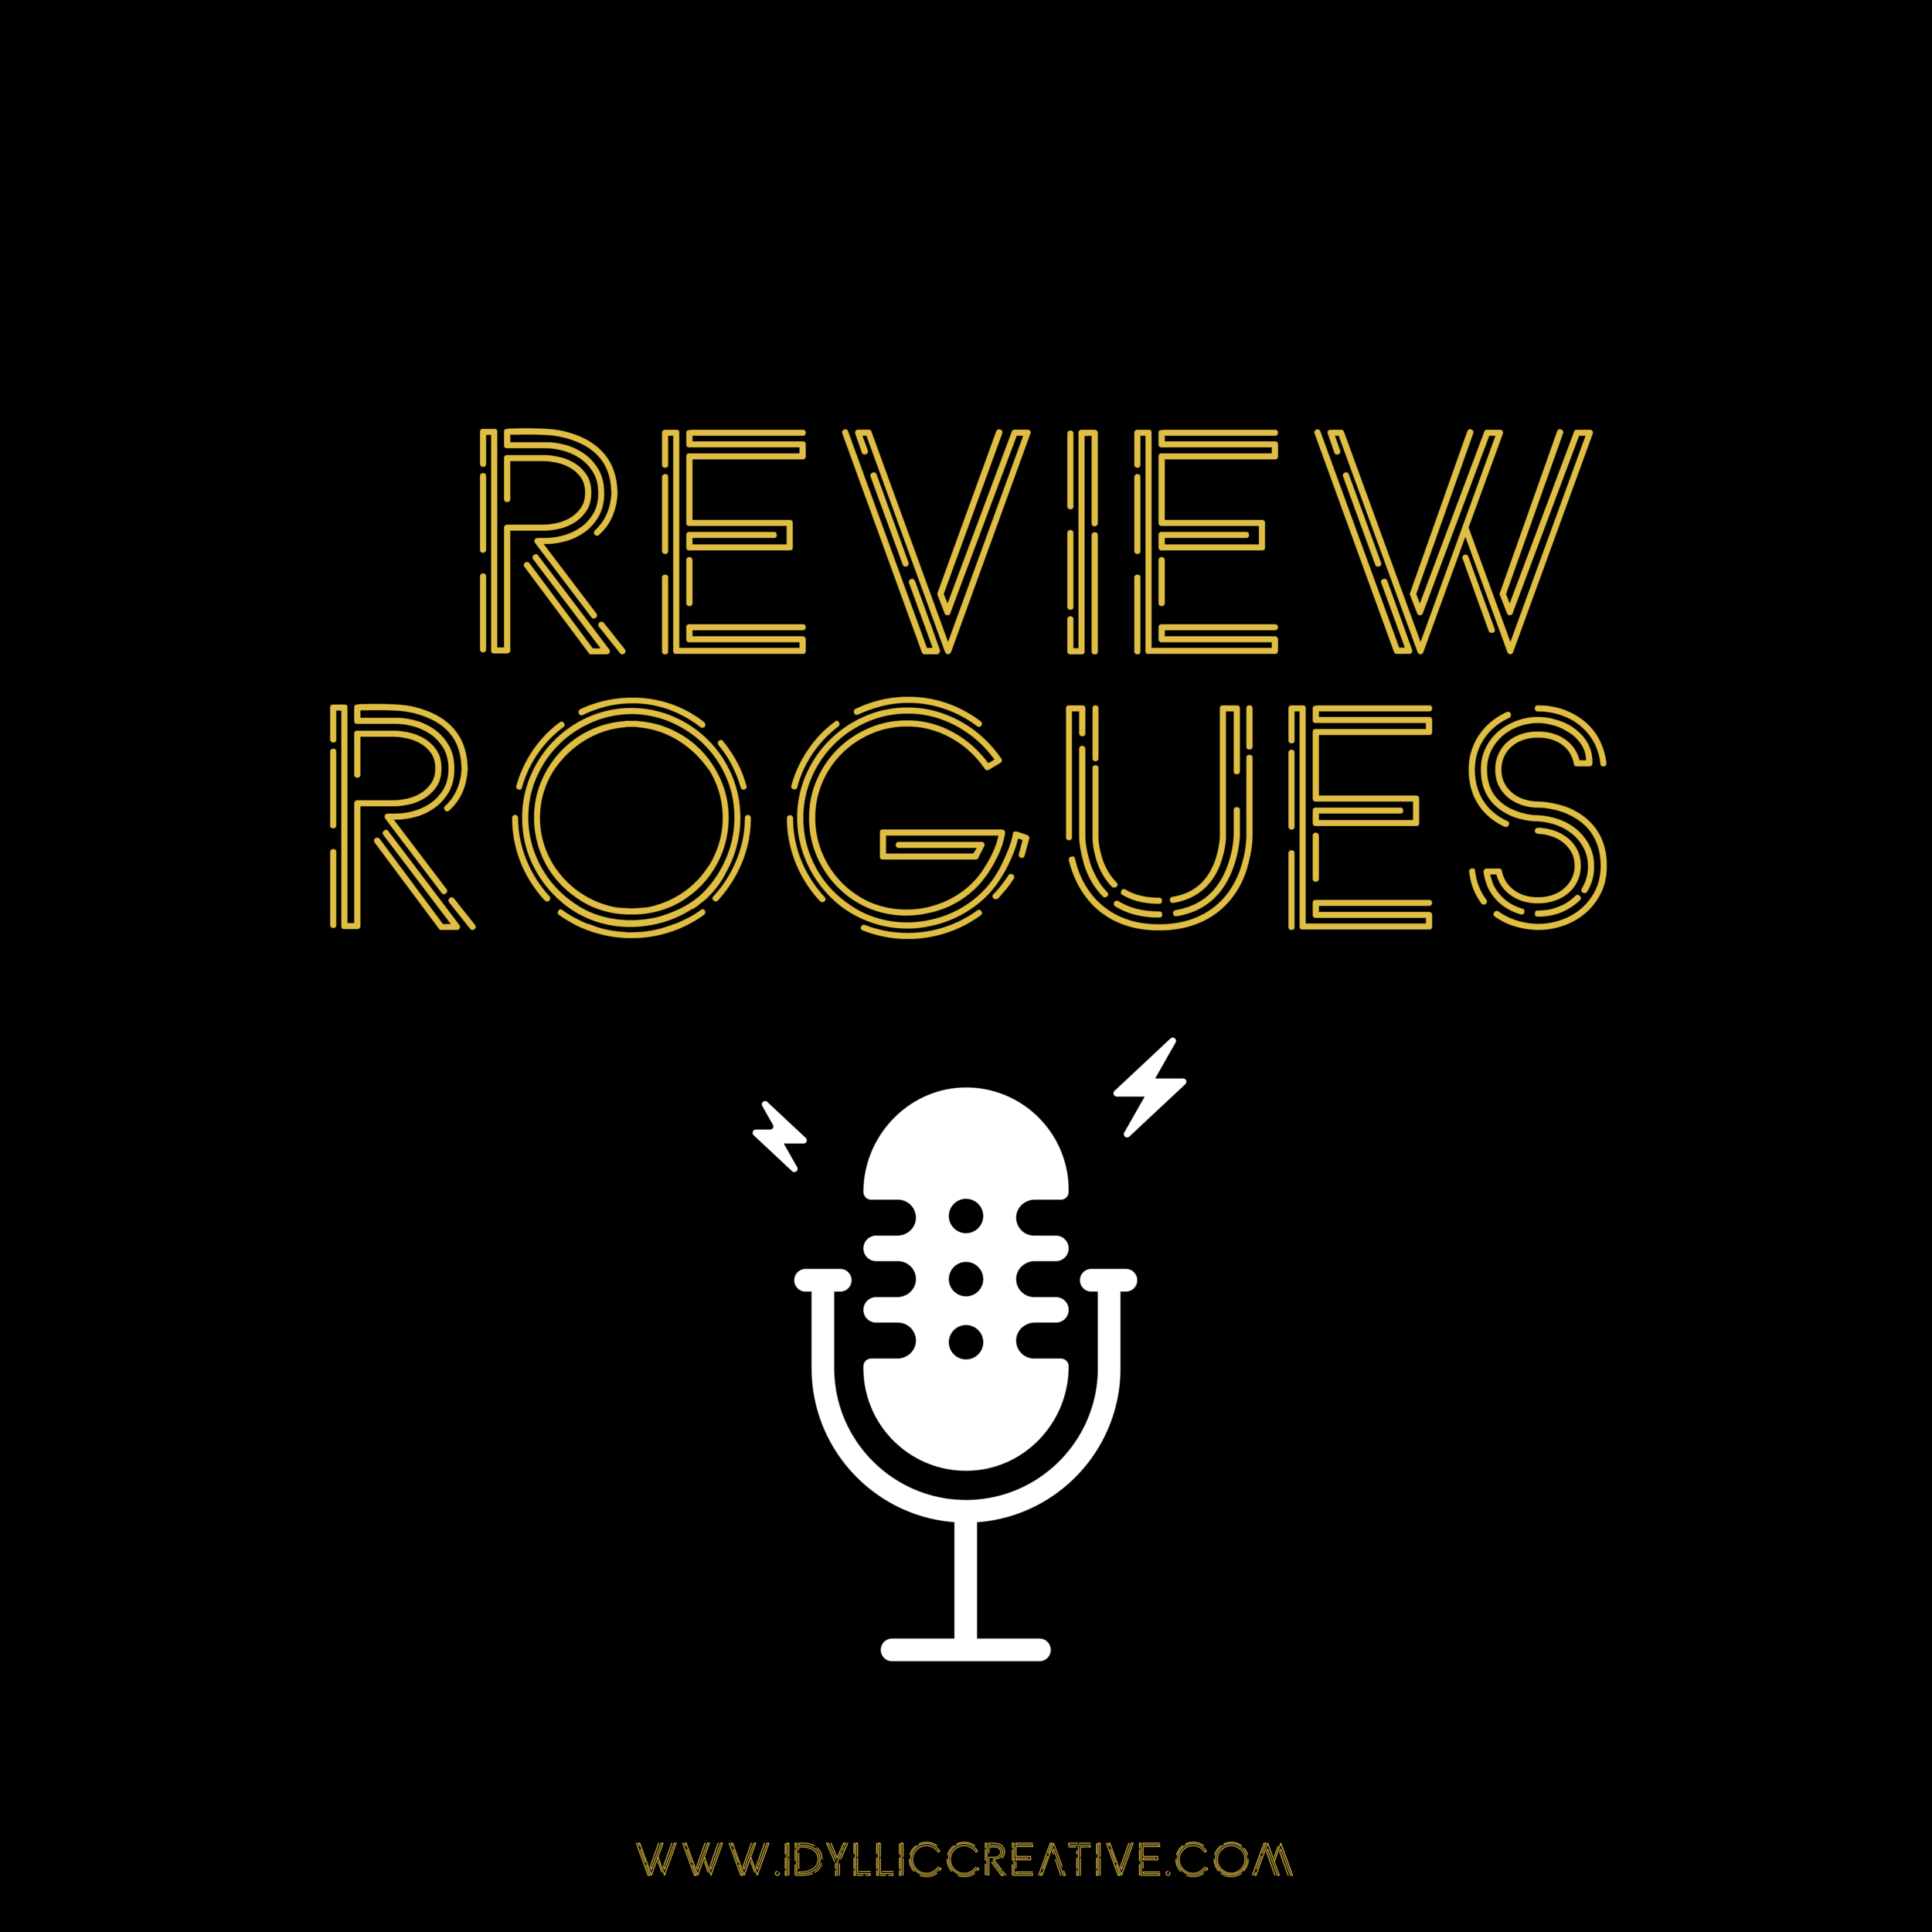 review_rogues_logo_1080_v2-01.png